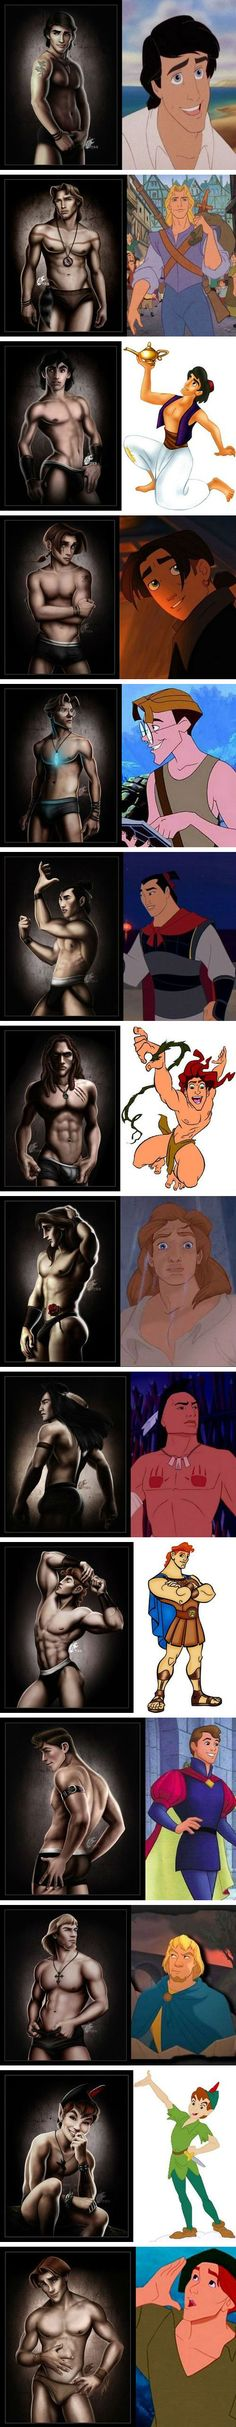 If Disney princes were underwear models.... wow.